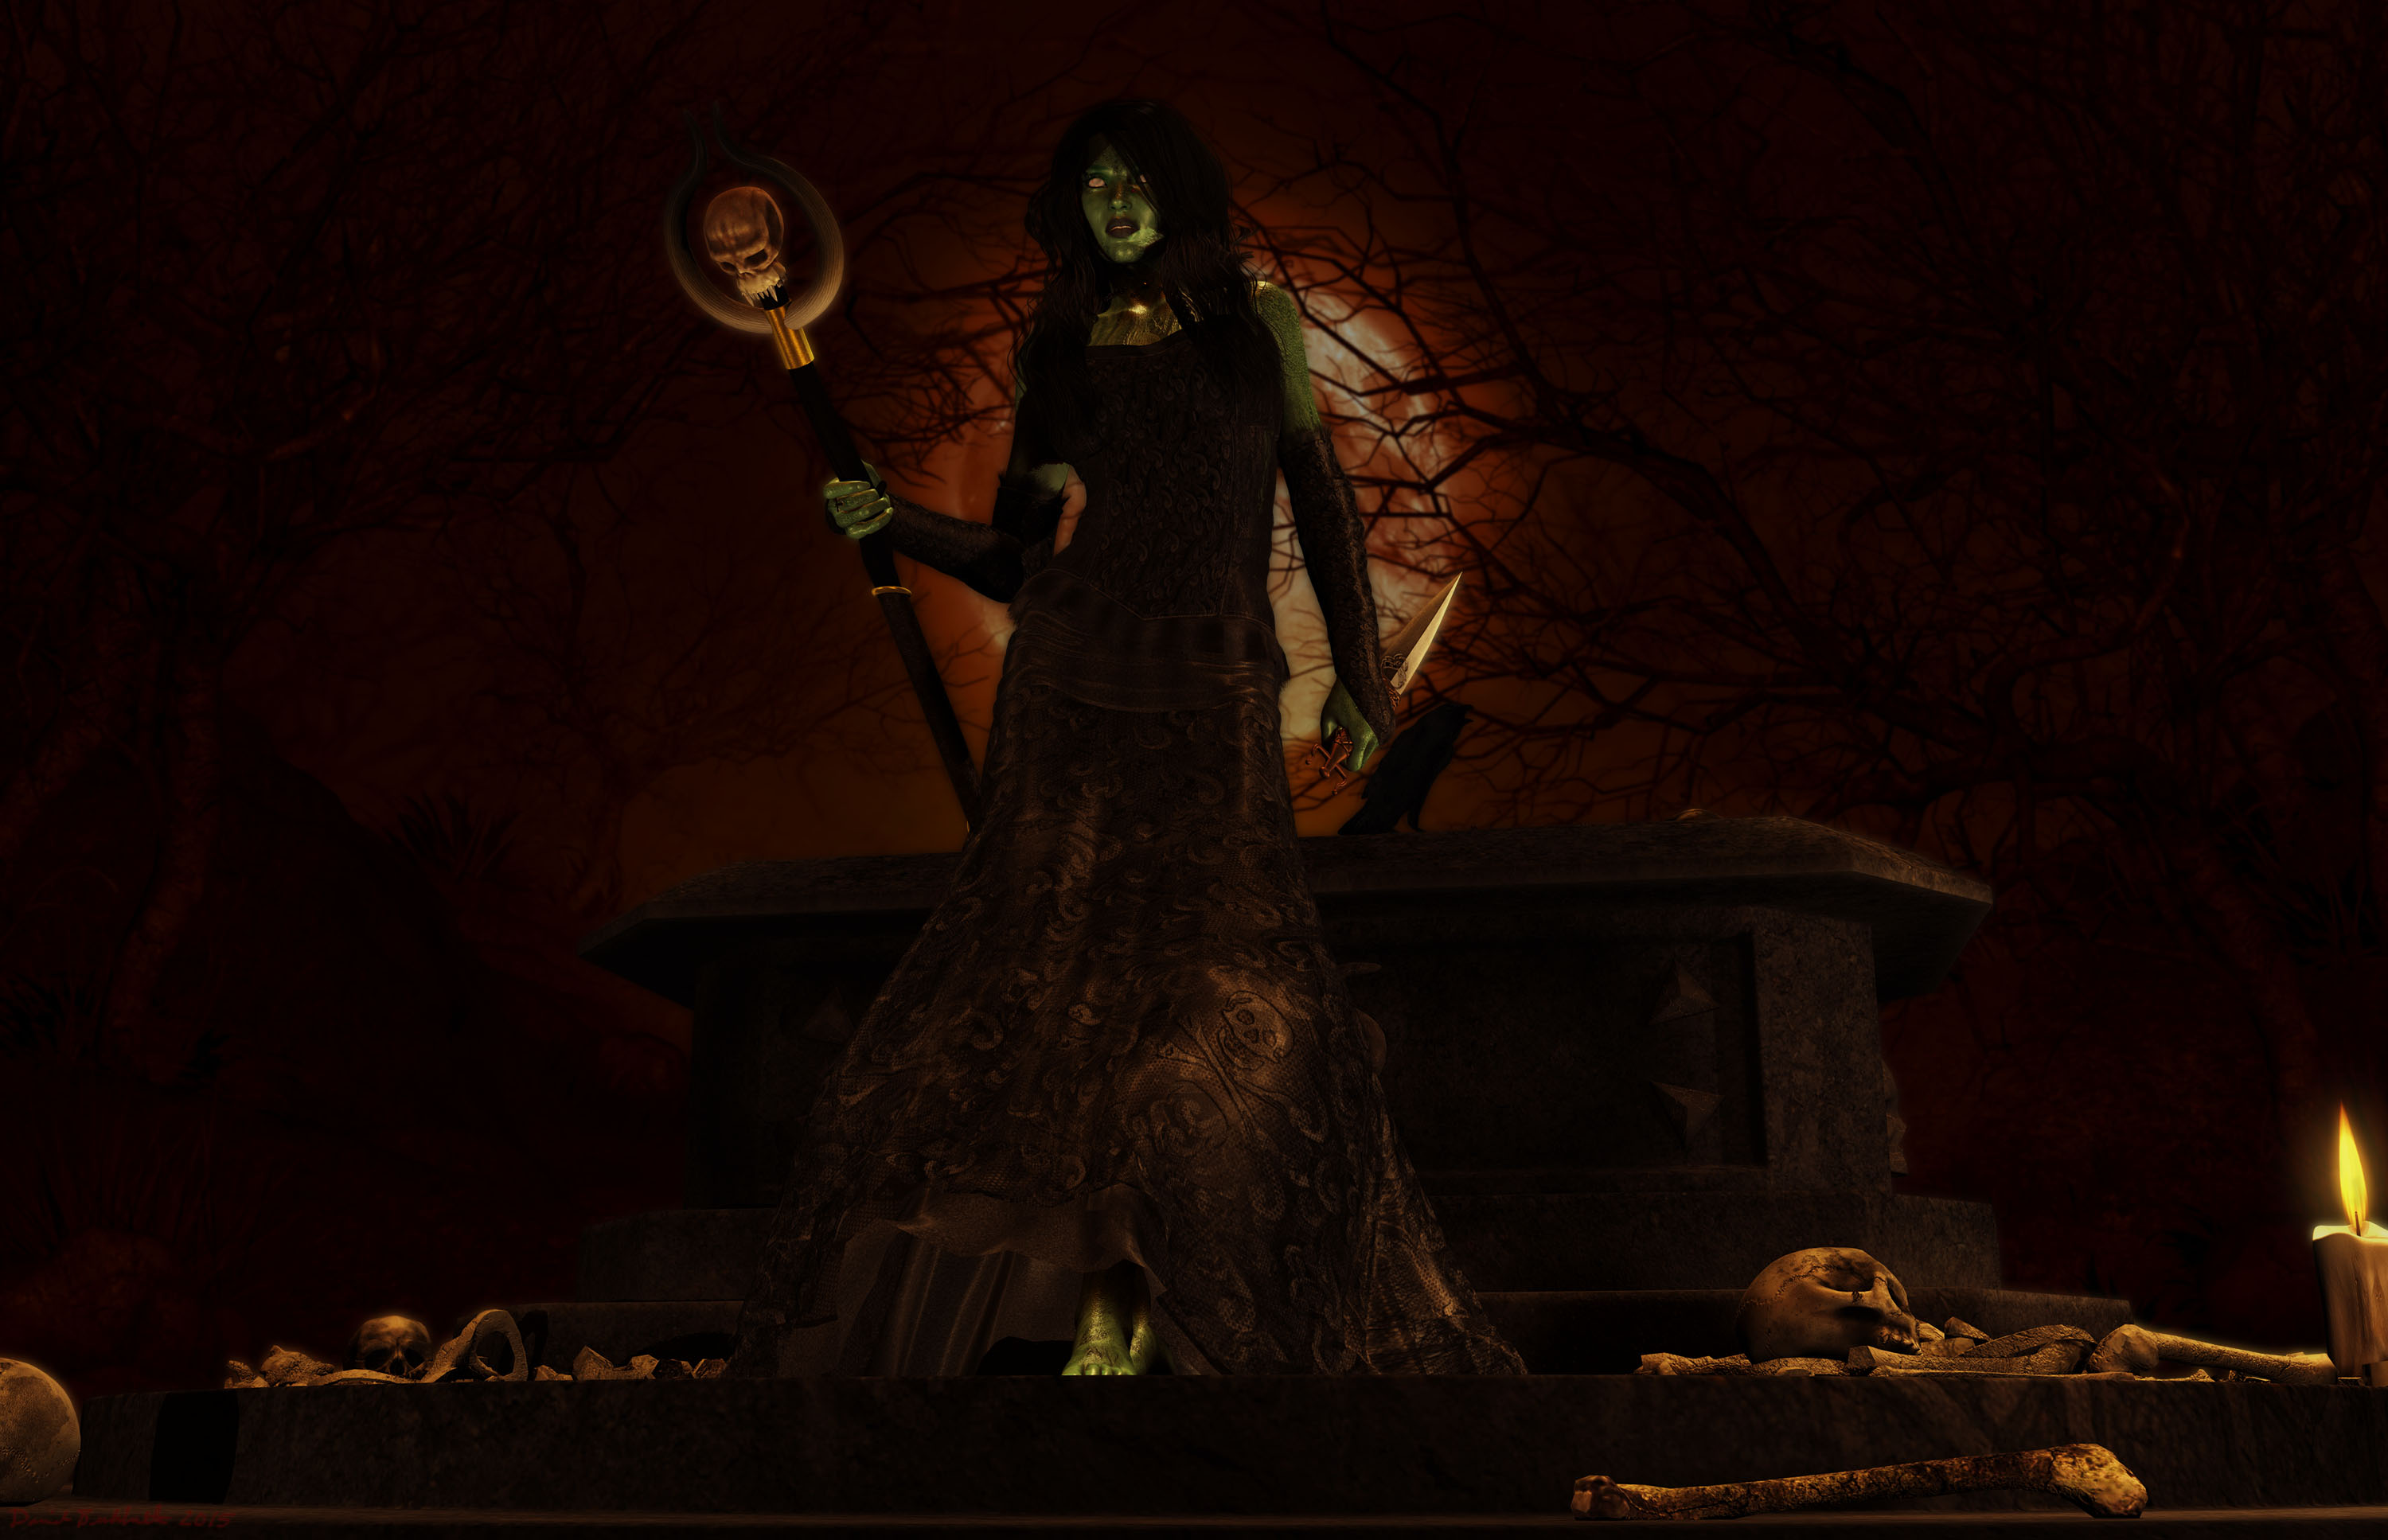 blood moon meaning witches - photo #12